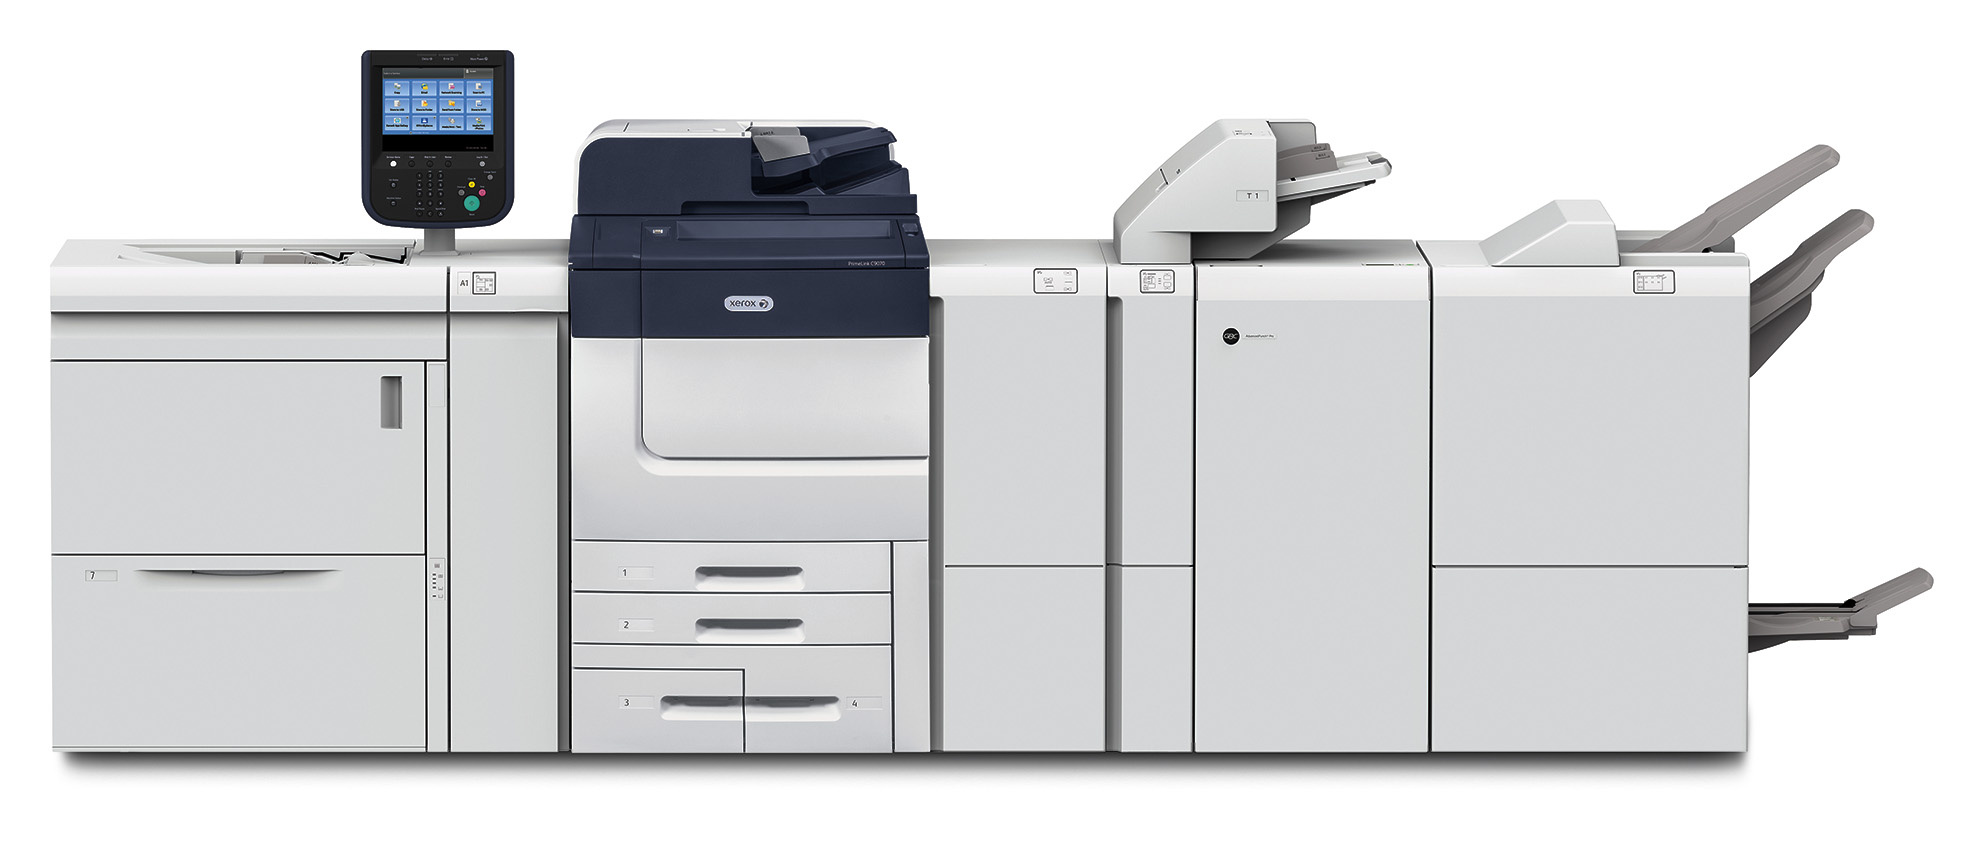 Xerox Primelink C9065/C9070 printer